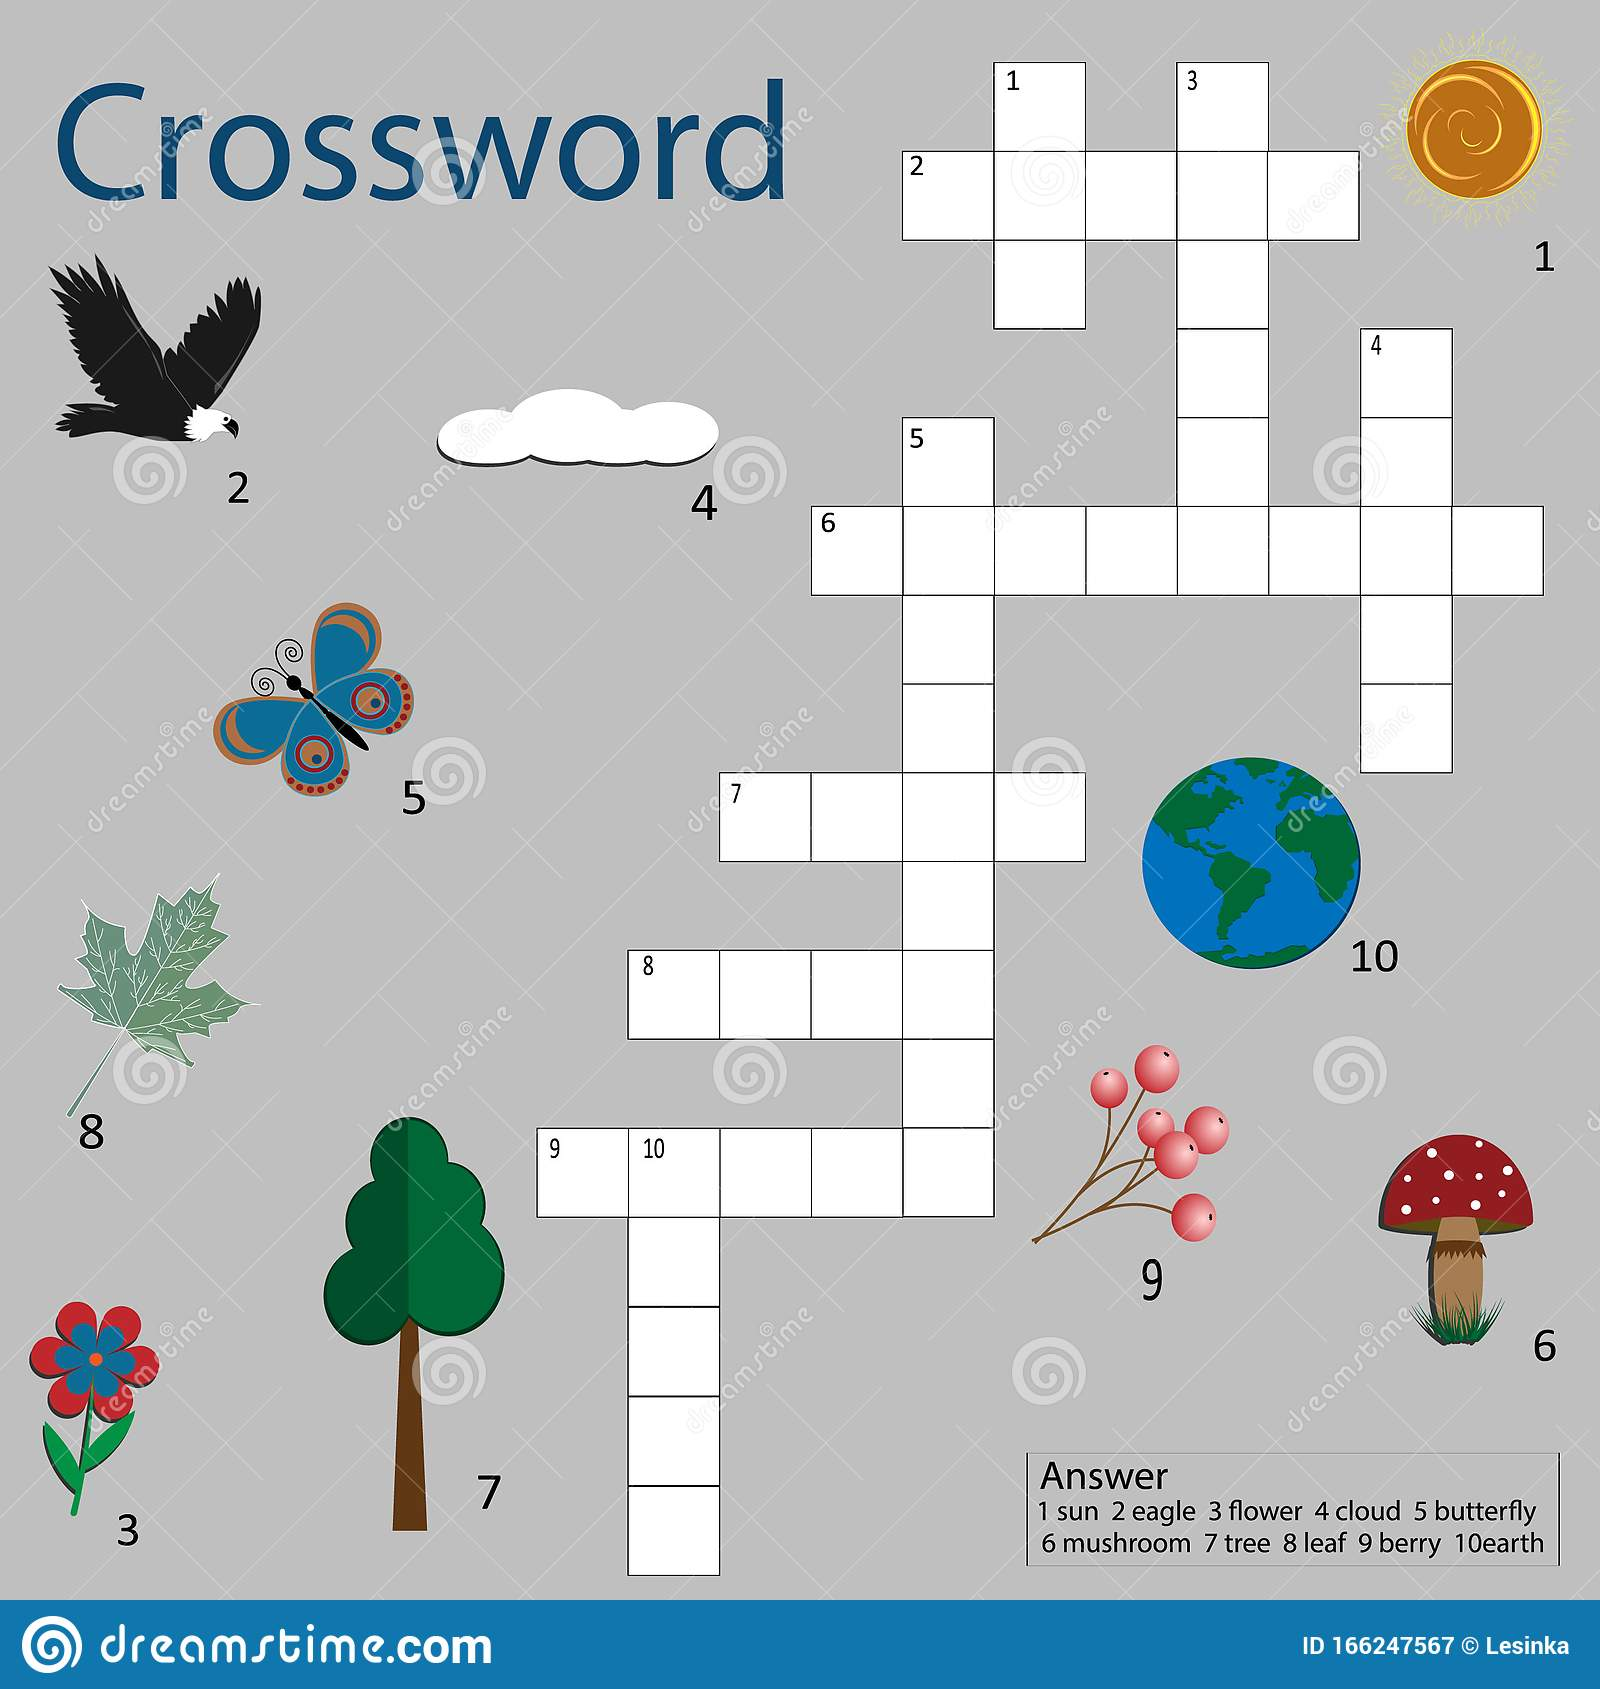 Crossword Puzzle Game For Kids Nature Theme Light Gray